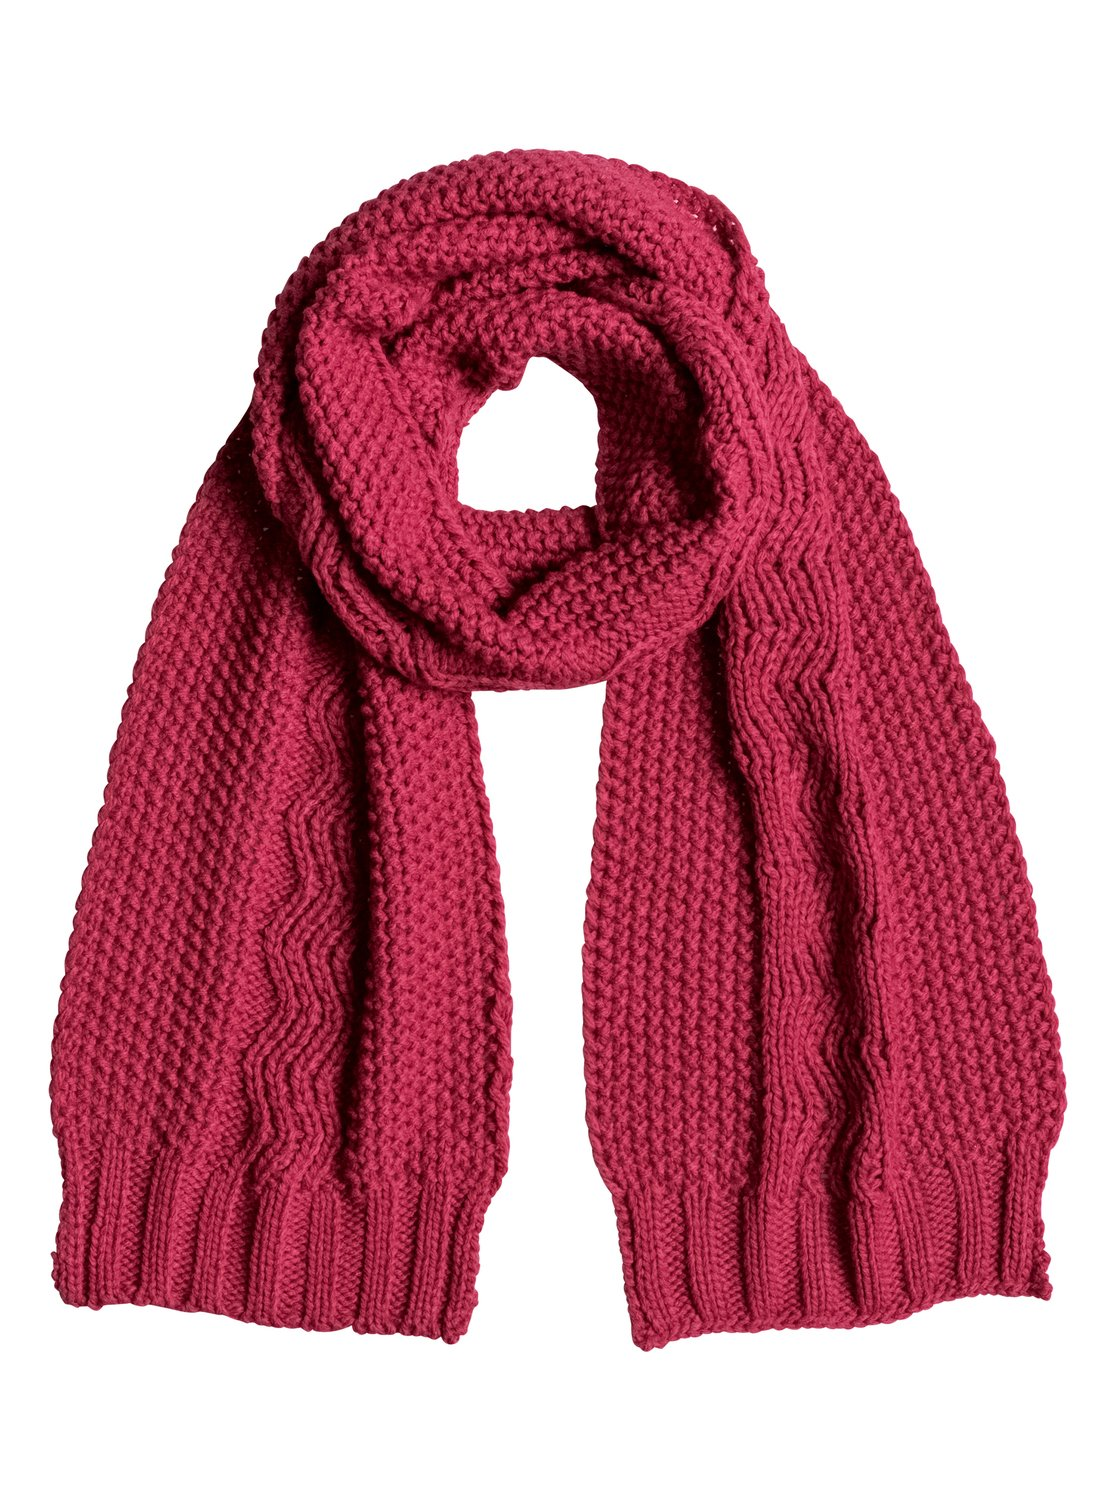 Вязаный шарф Stay Out Scarf&amp;nbsp;<br>